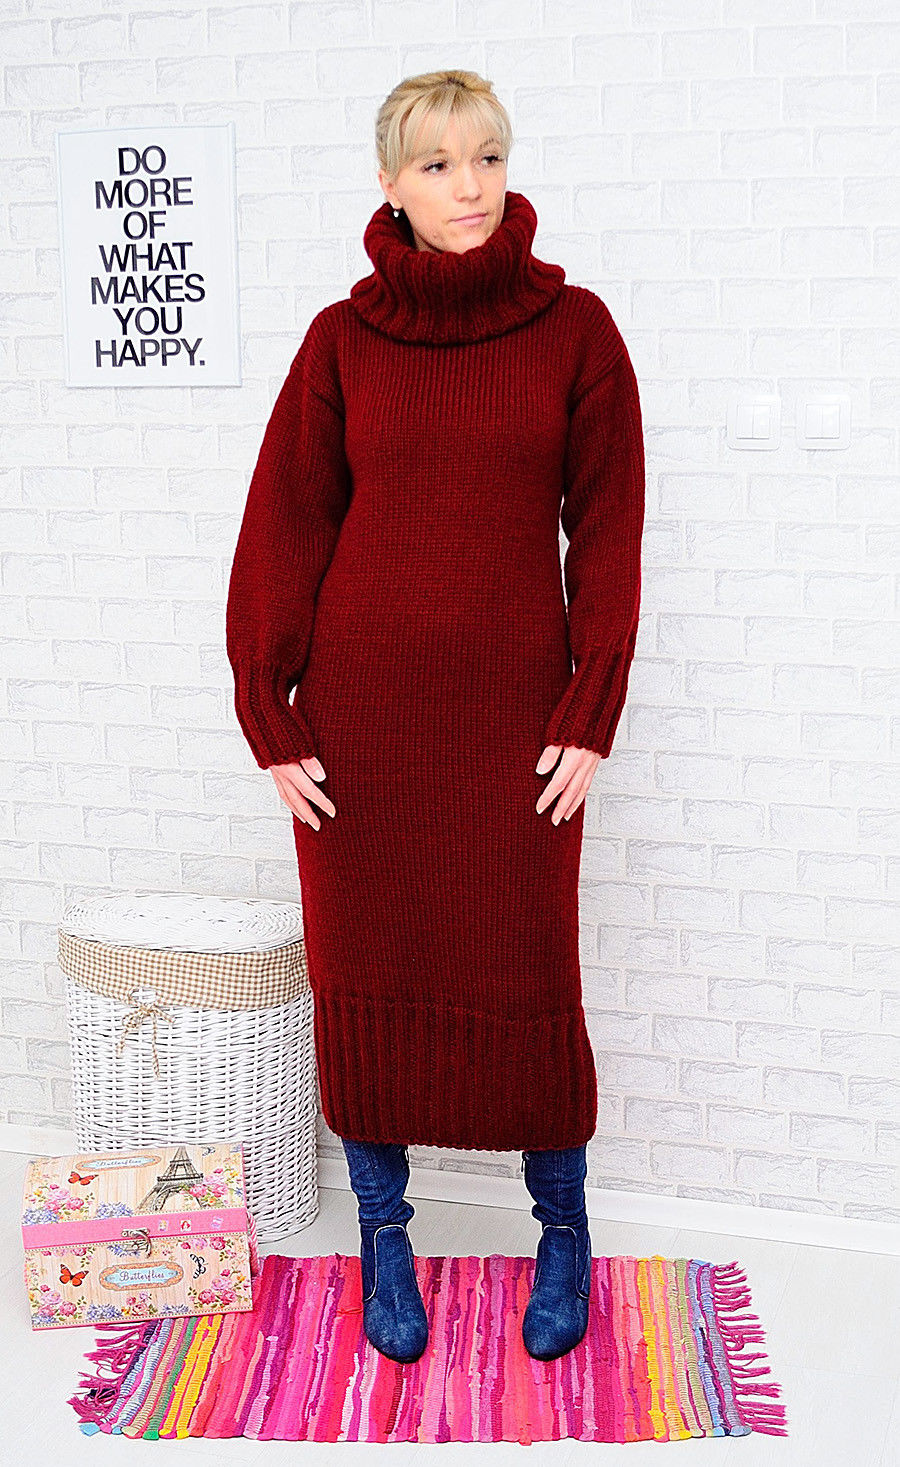 70564236_bordeaux-robe-sweater-mohair-wool-1.jpg